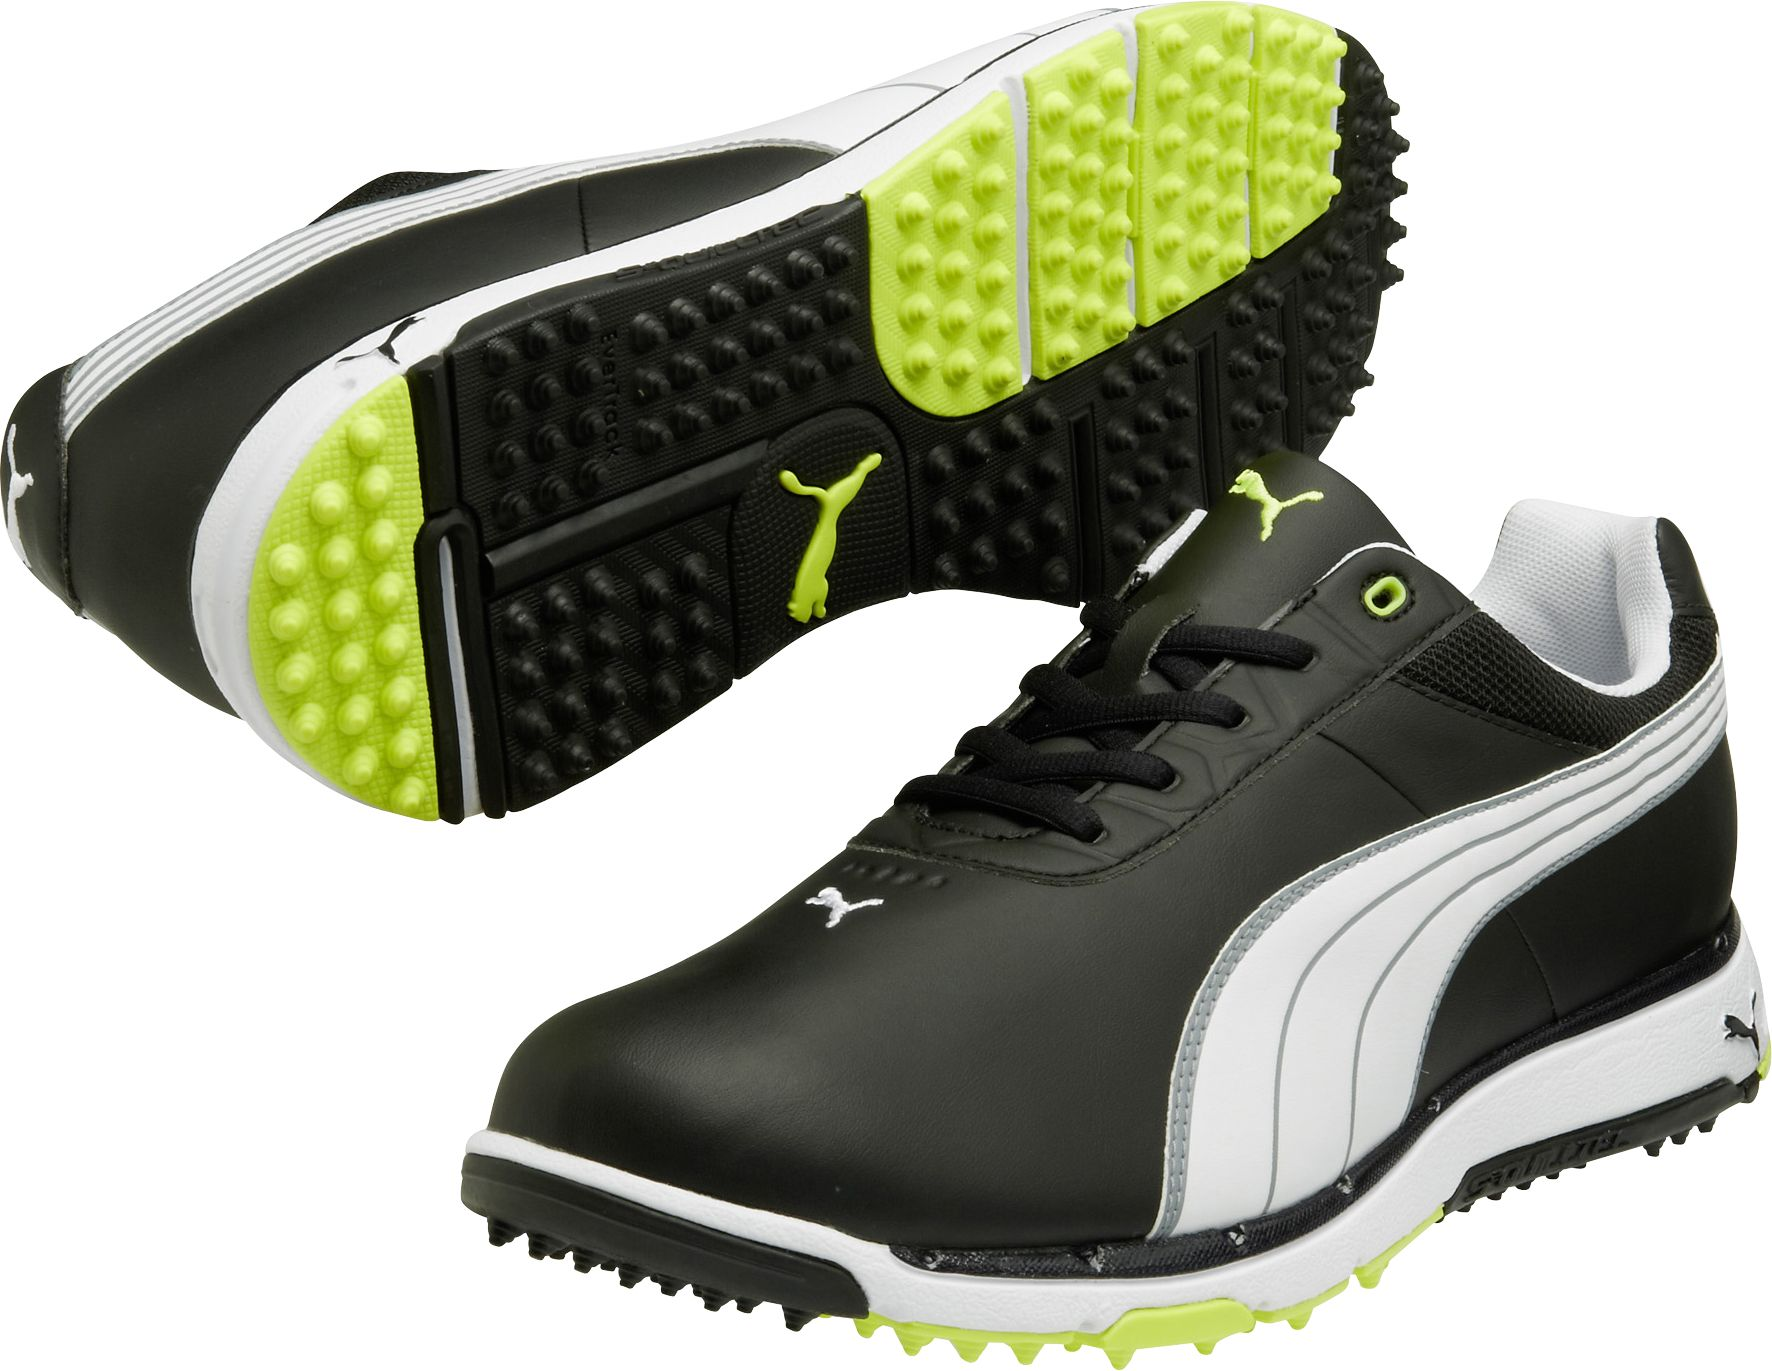 Puma men's Faas Grip 2.0 golf Shoe